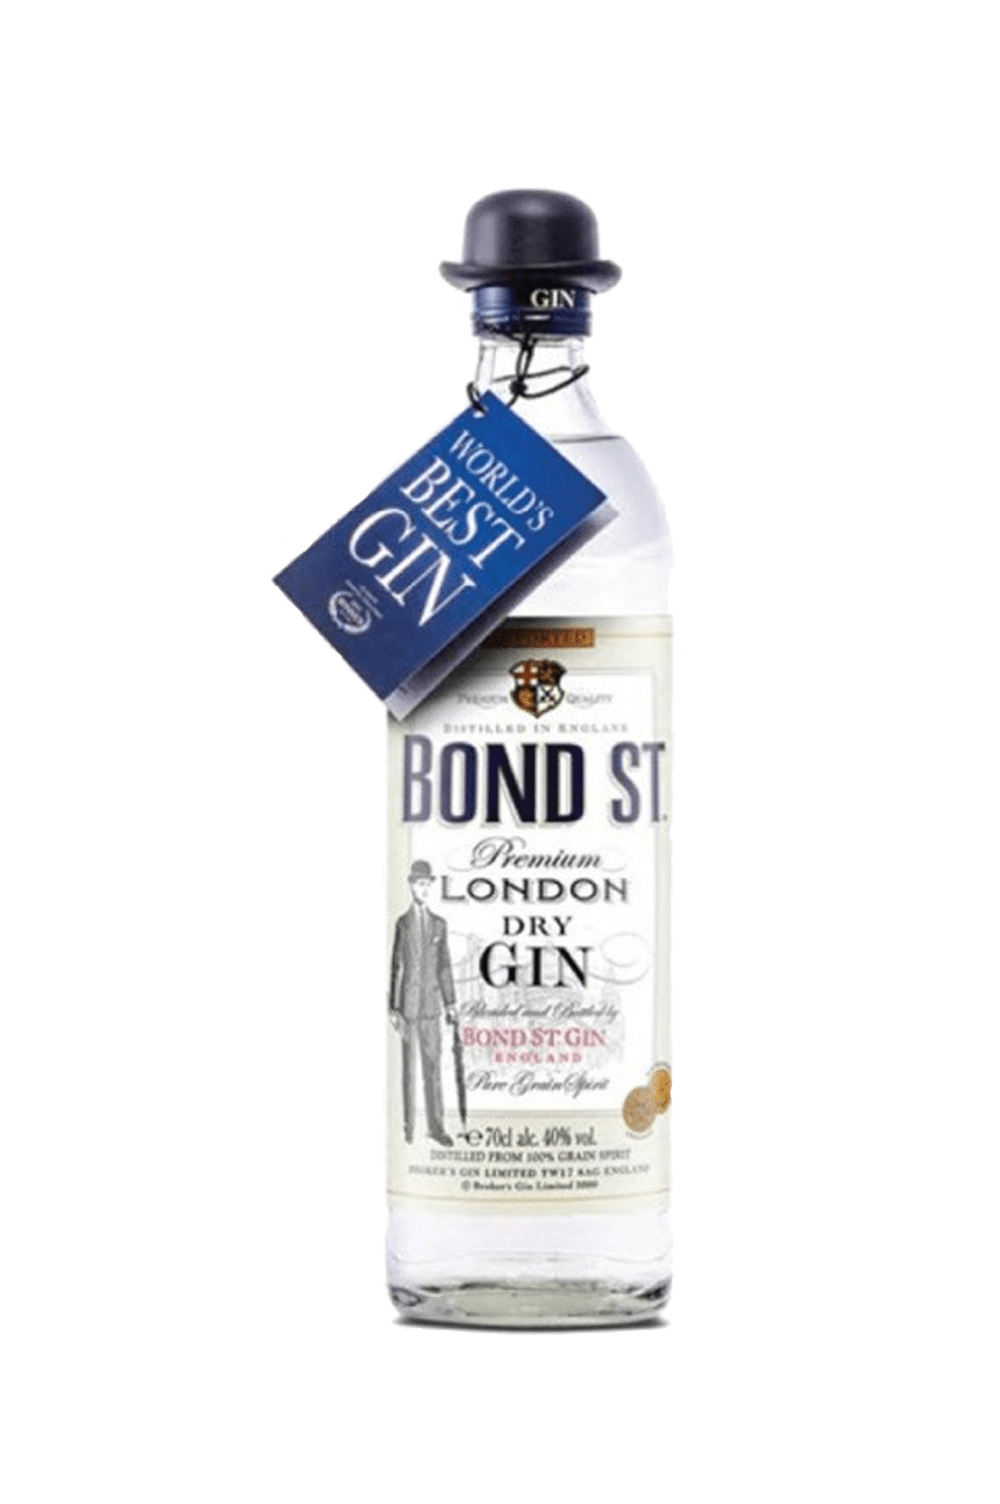 Bond St. Premium London Dry Gin 40